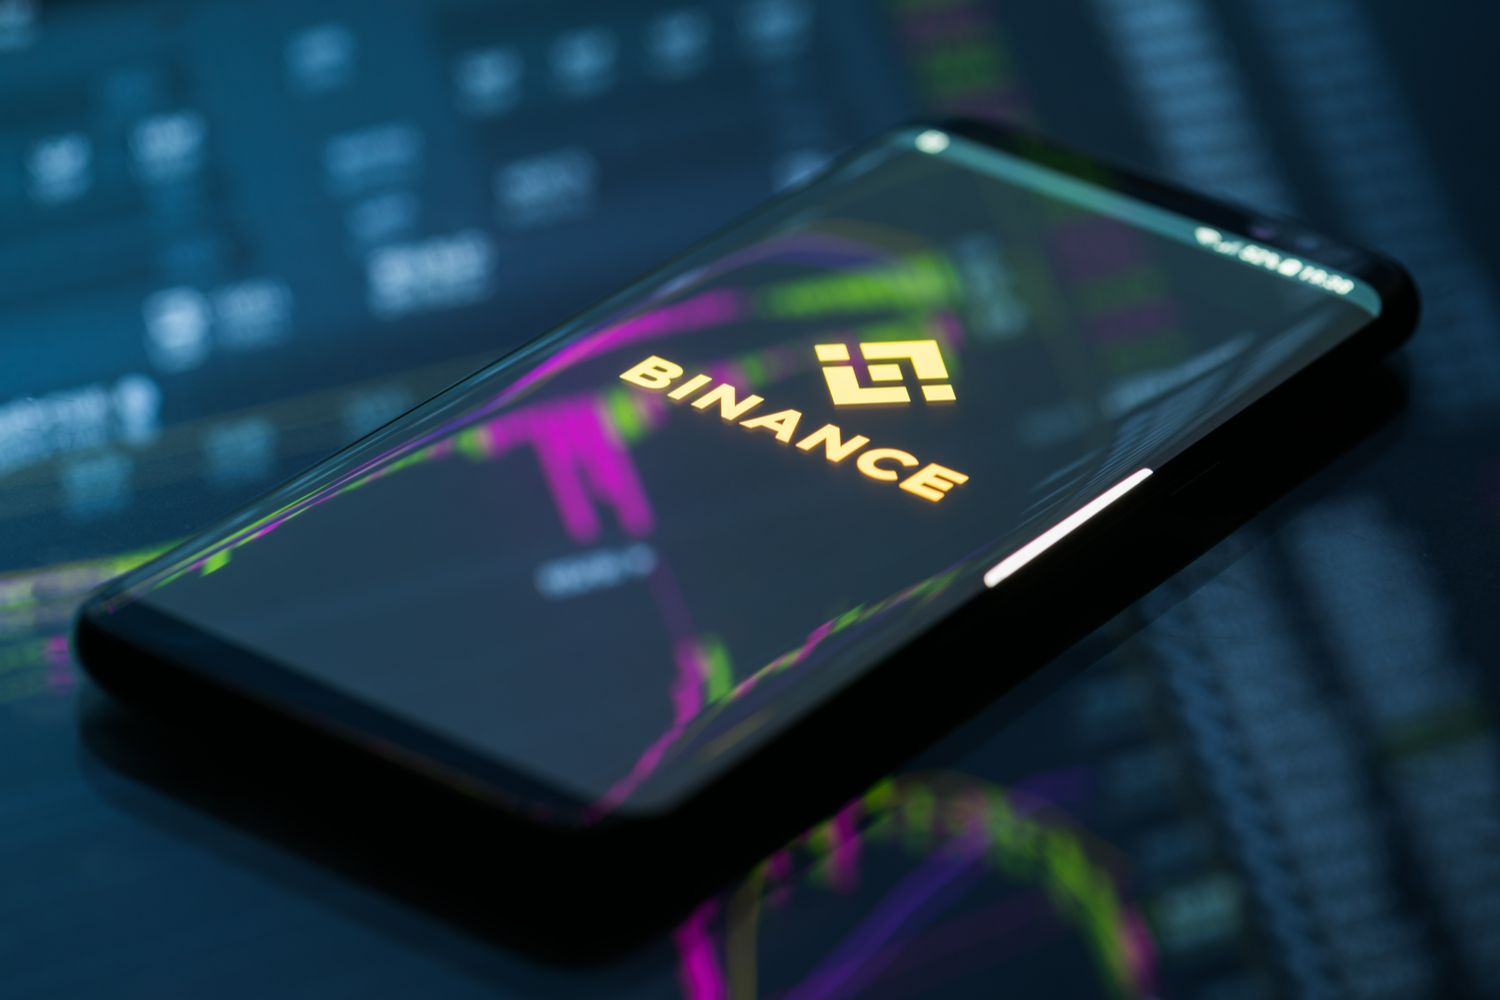 Binance Launches DeFi Staking With Cryptos Kava and Dai